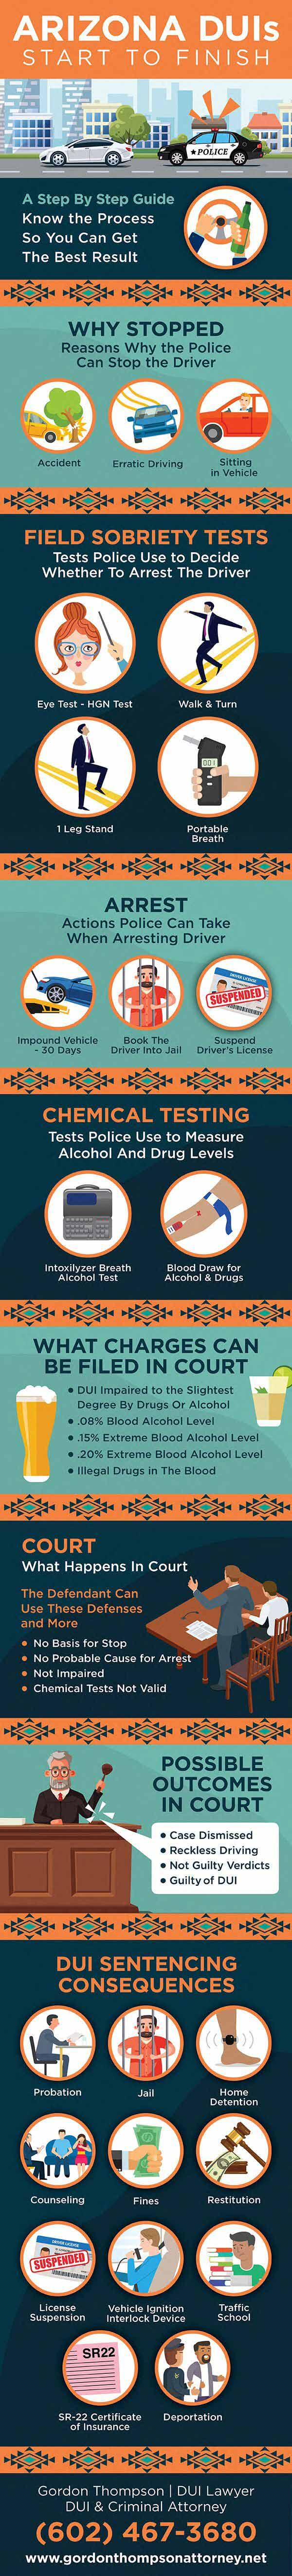 What is a Misdemeanor DUI in Arizona; An informational guide through an Arizona DUI case, step by step with Phoenix, Arizona DUI & Criminal Attorney Gordon Thompson. 1. Why Stopped: Accident, Erratic Driving, Sitting in Vehicle. 2. Field Sobriety Tests: Eye Test, Walk & Turn, 1 Leg Stand, Portable Breath Test. 3. Chemical Testing: Intoxilyzer Breath Test, Blood Draw for Alcohol & Drugs. 4. Arrest: Vehicle Impound, Booked Into Jail, License Suspension. 5. What Charges Can be Filed: DUI Impaired Drugs or Alcohol, .08% DUI, .15% Extreme DUI, .20% Super Extreme DUI, DUI Drugs. 6. Defenses in Court: No Basis for Stop, No probable Cause for Arrest, Not Impaired, Chemical Tests Invalid. 7. Possible Outcomes: Dismissed, Reckless Driving, Not Guilty Verdicts, Guilty DUI. 8. DUI Sentencing Consequences: Probation, Jail, Home Detention, Counseling, Fines, Restitution, License Suspension, Interlock Device, Traffic School, SR-22 Insurance.